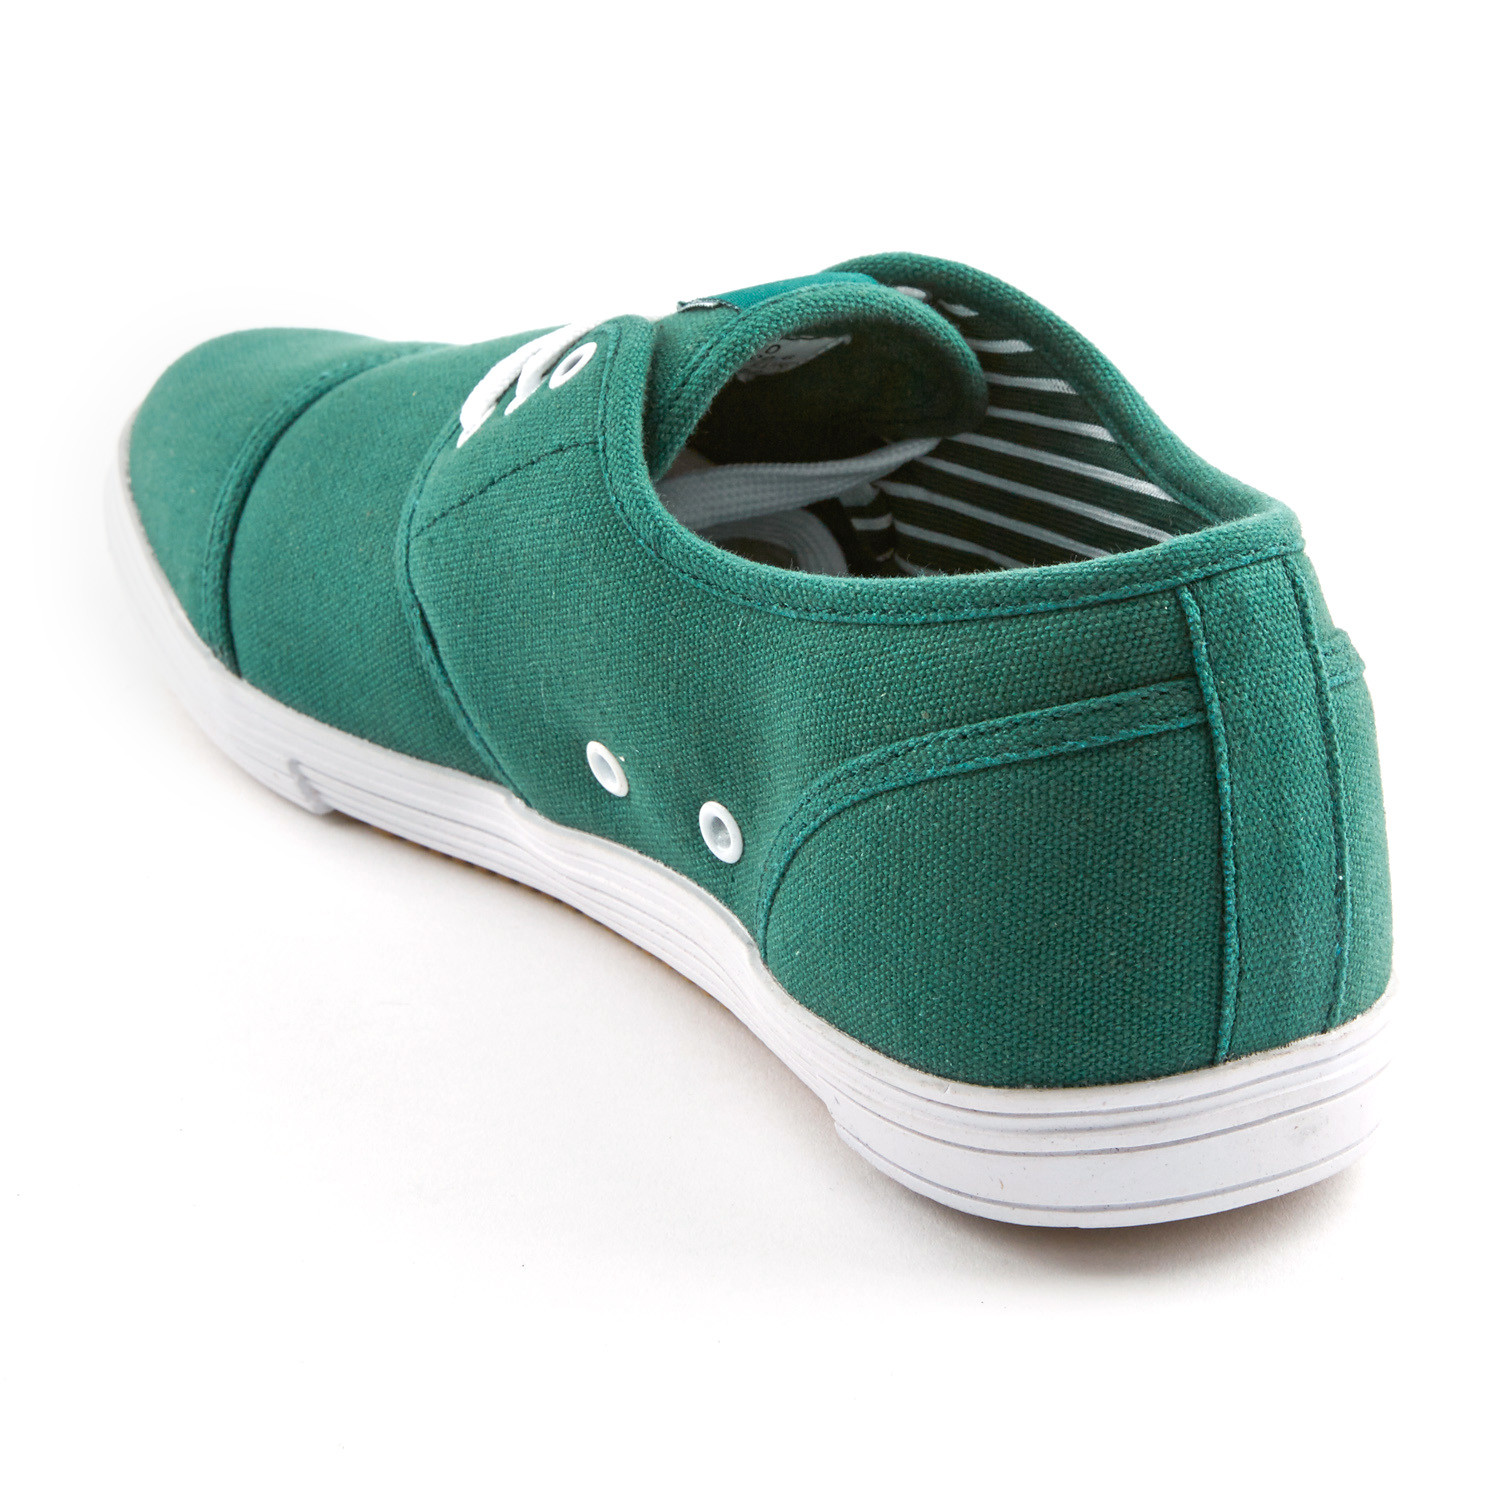 leo sneaker green us 7 vlado touch of modern. Black Bedroom Furniture Sets. Home Design Ideas